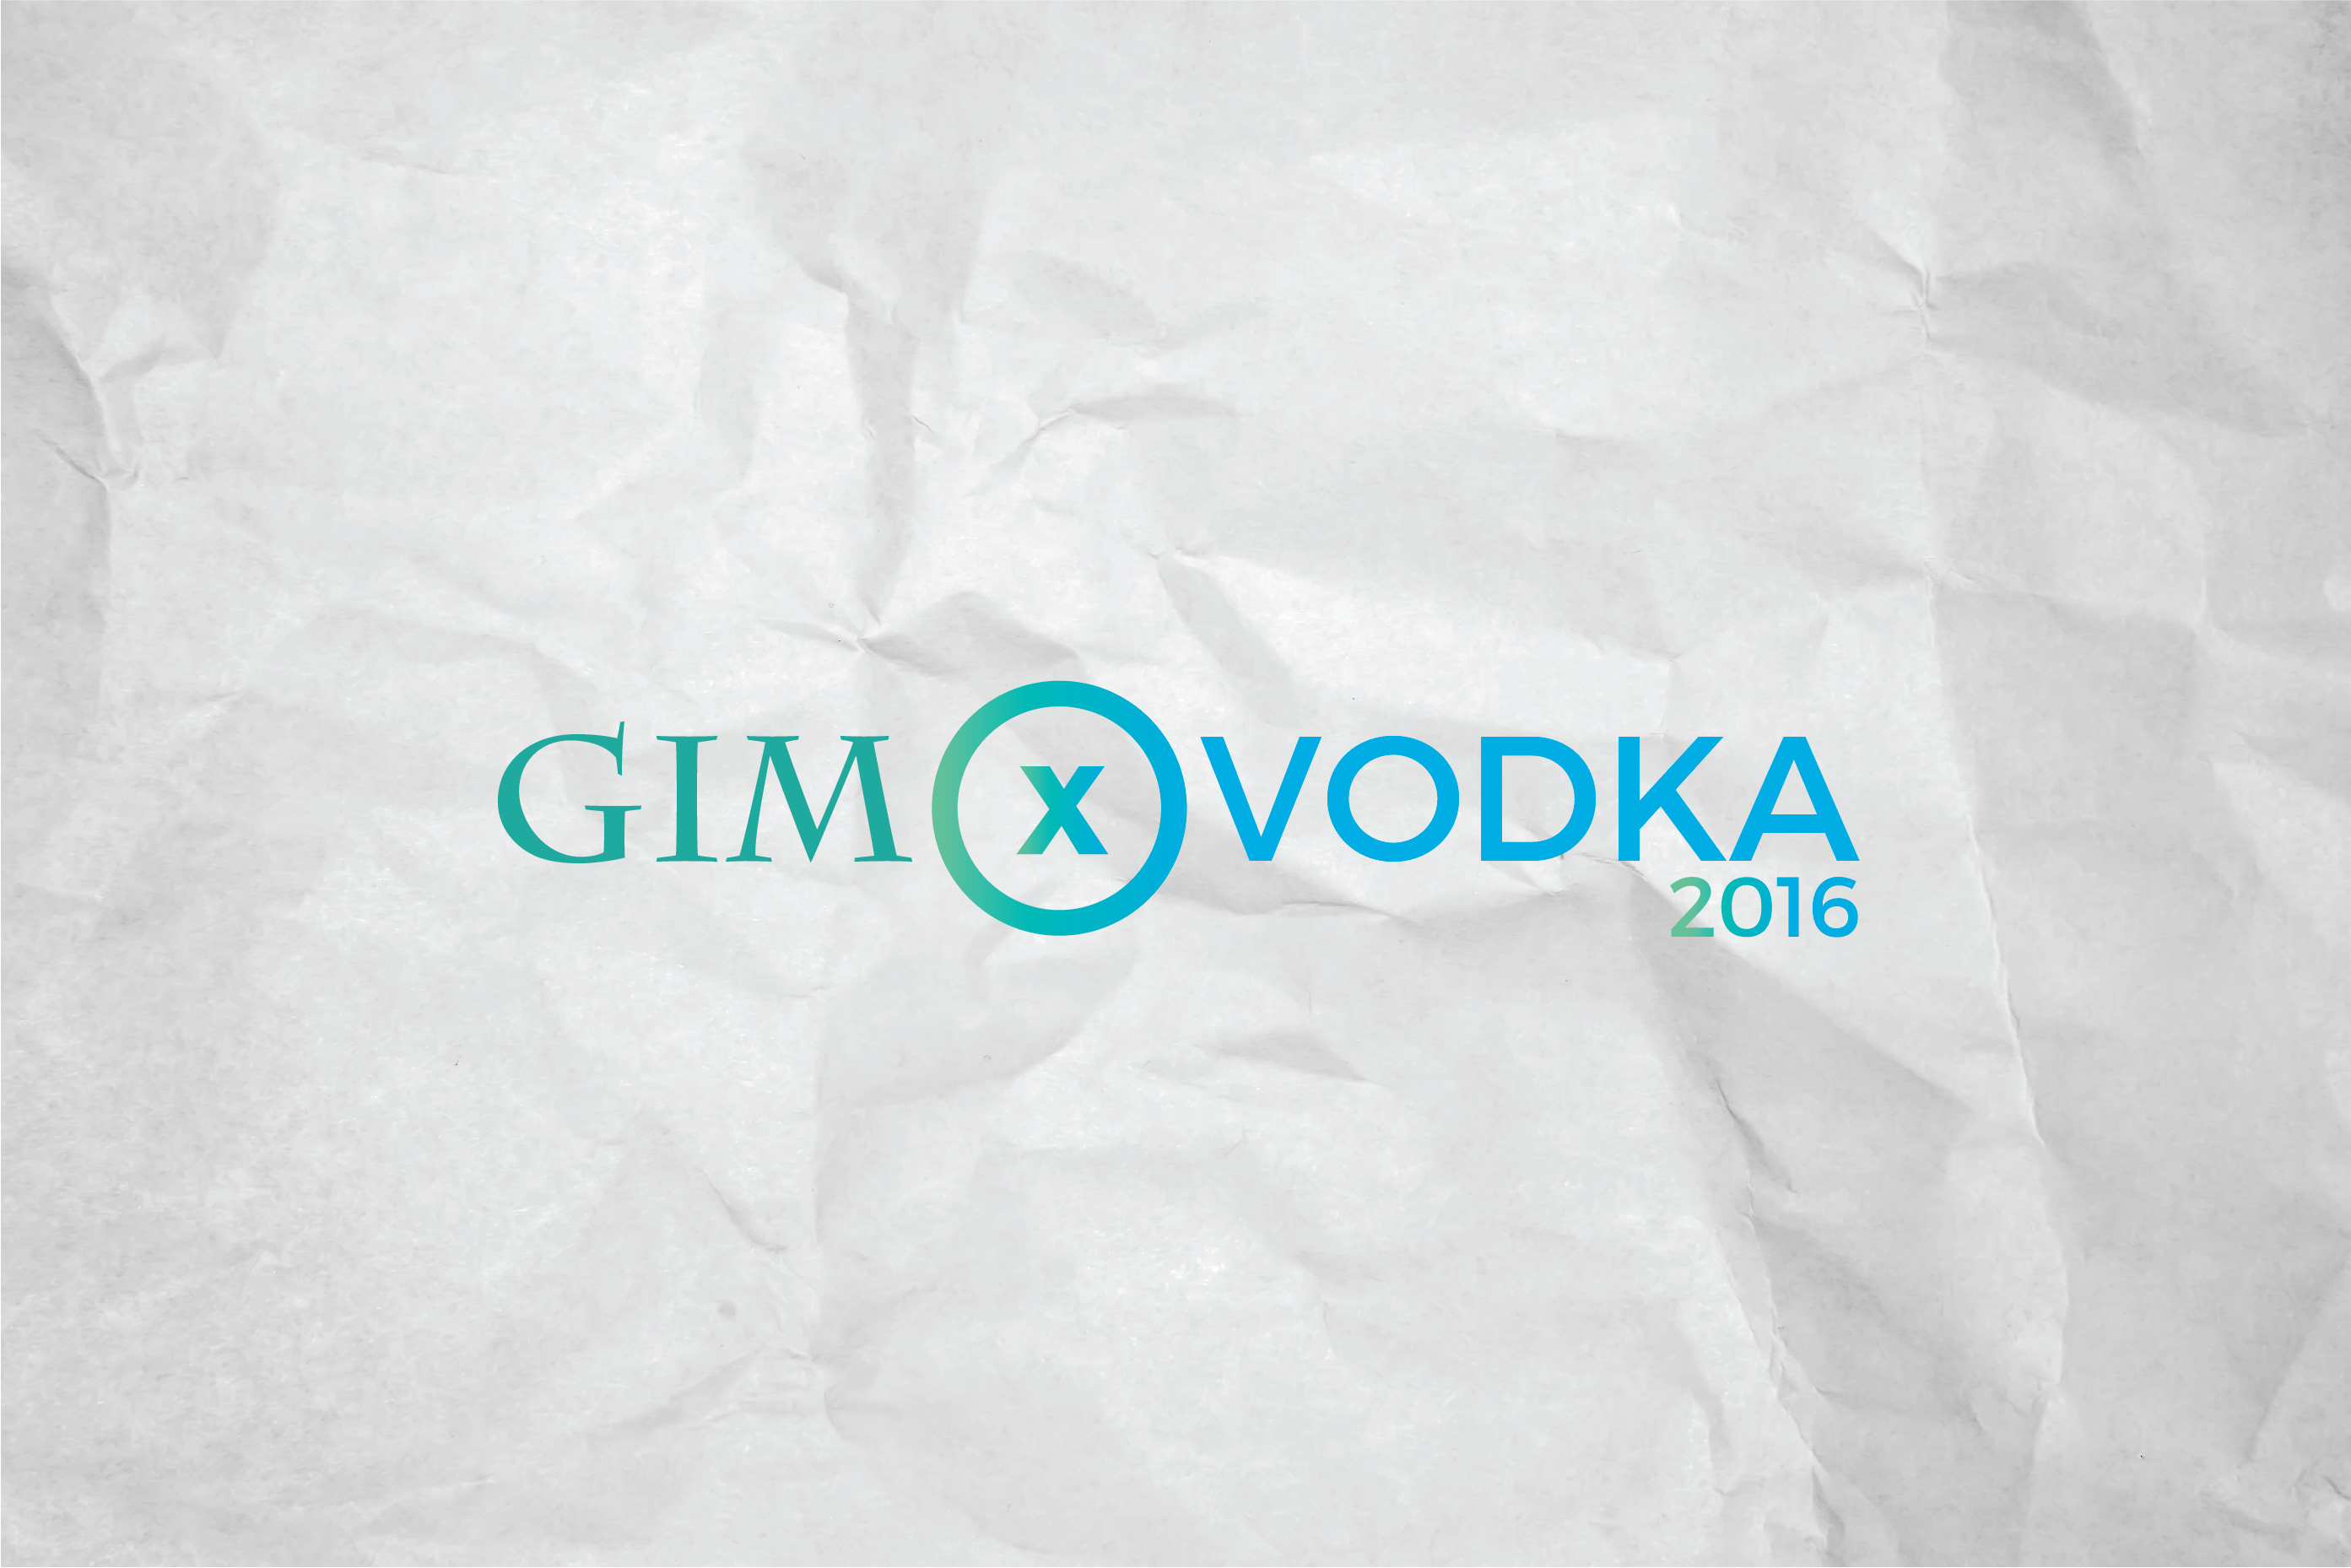 gim e vodka